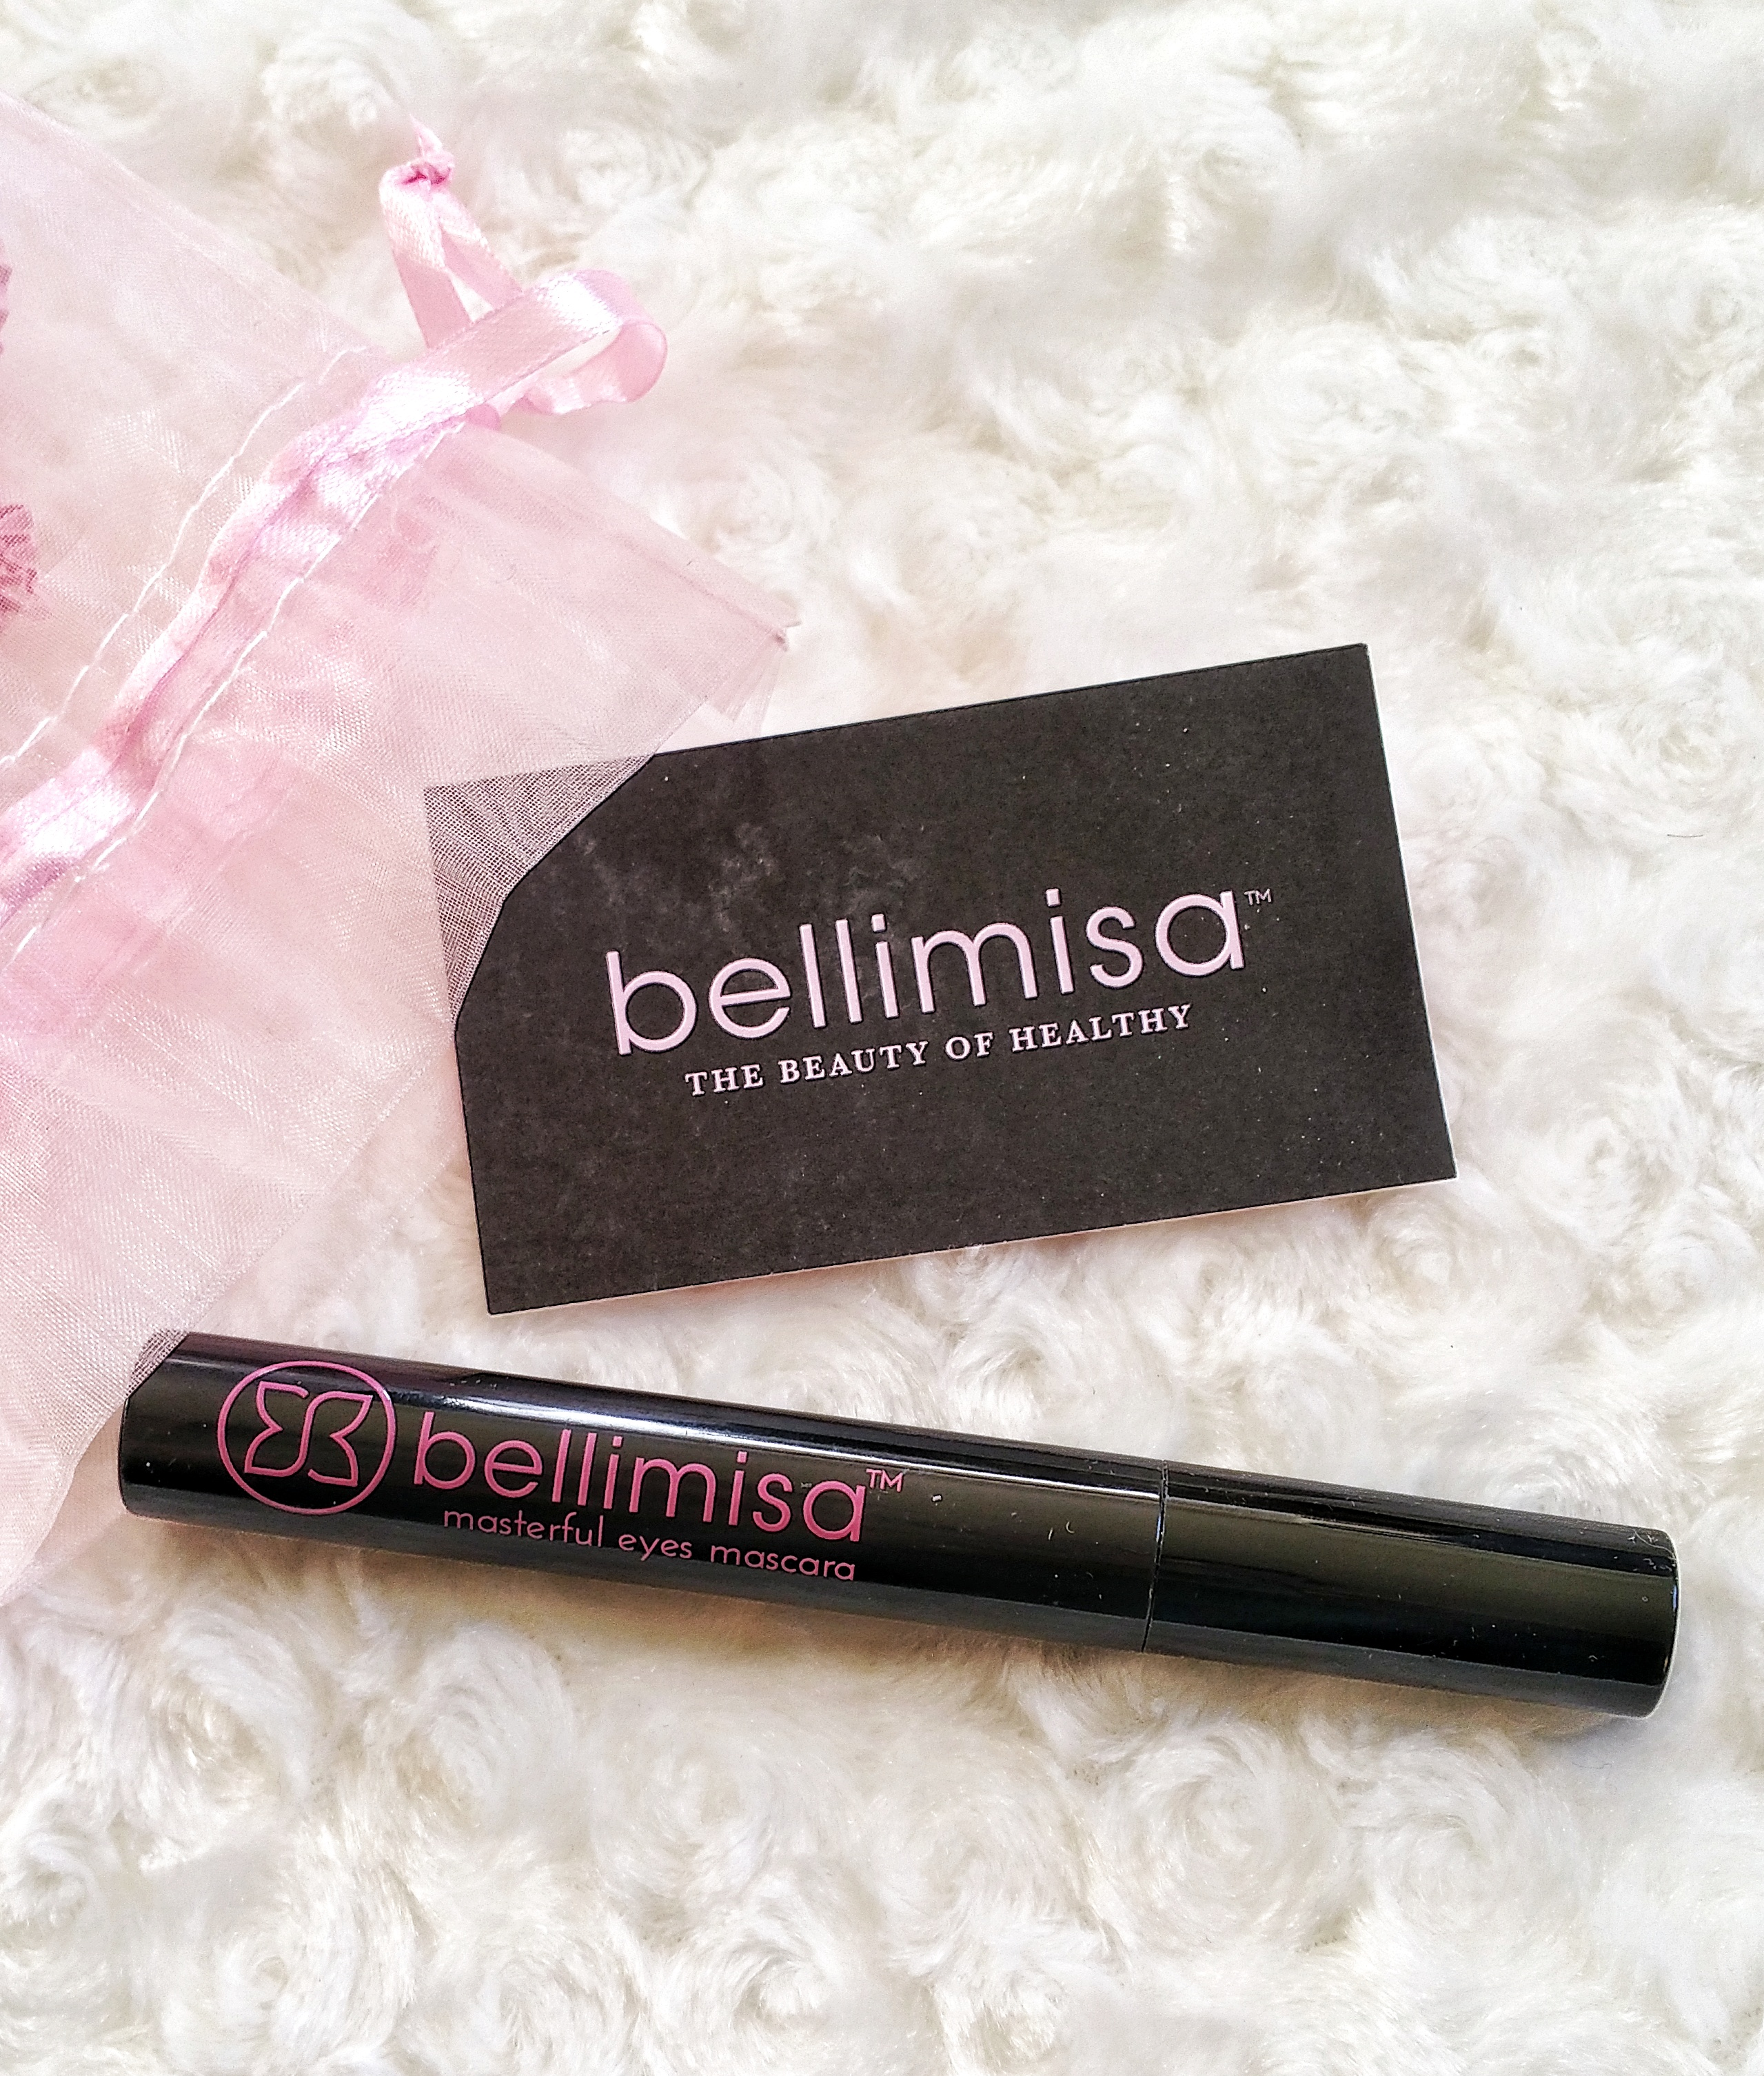 mascara, Bellimisa Masterful Eyes Mascara, review, beauty, Bellimisa, vitamin E, master eyes, lashes, makeup, beauty